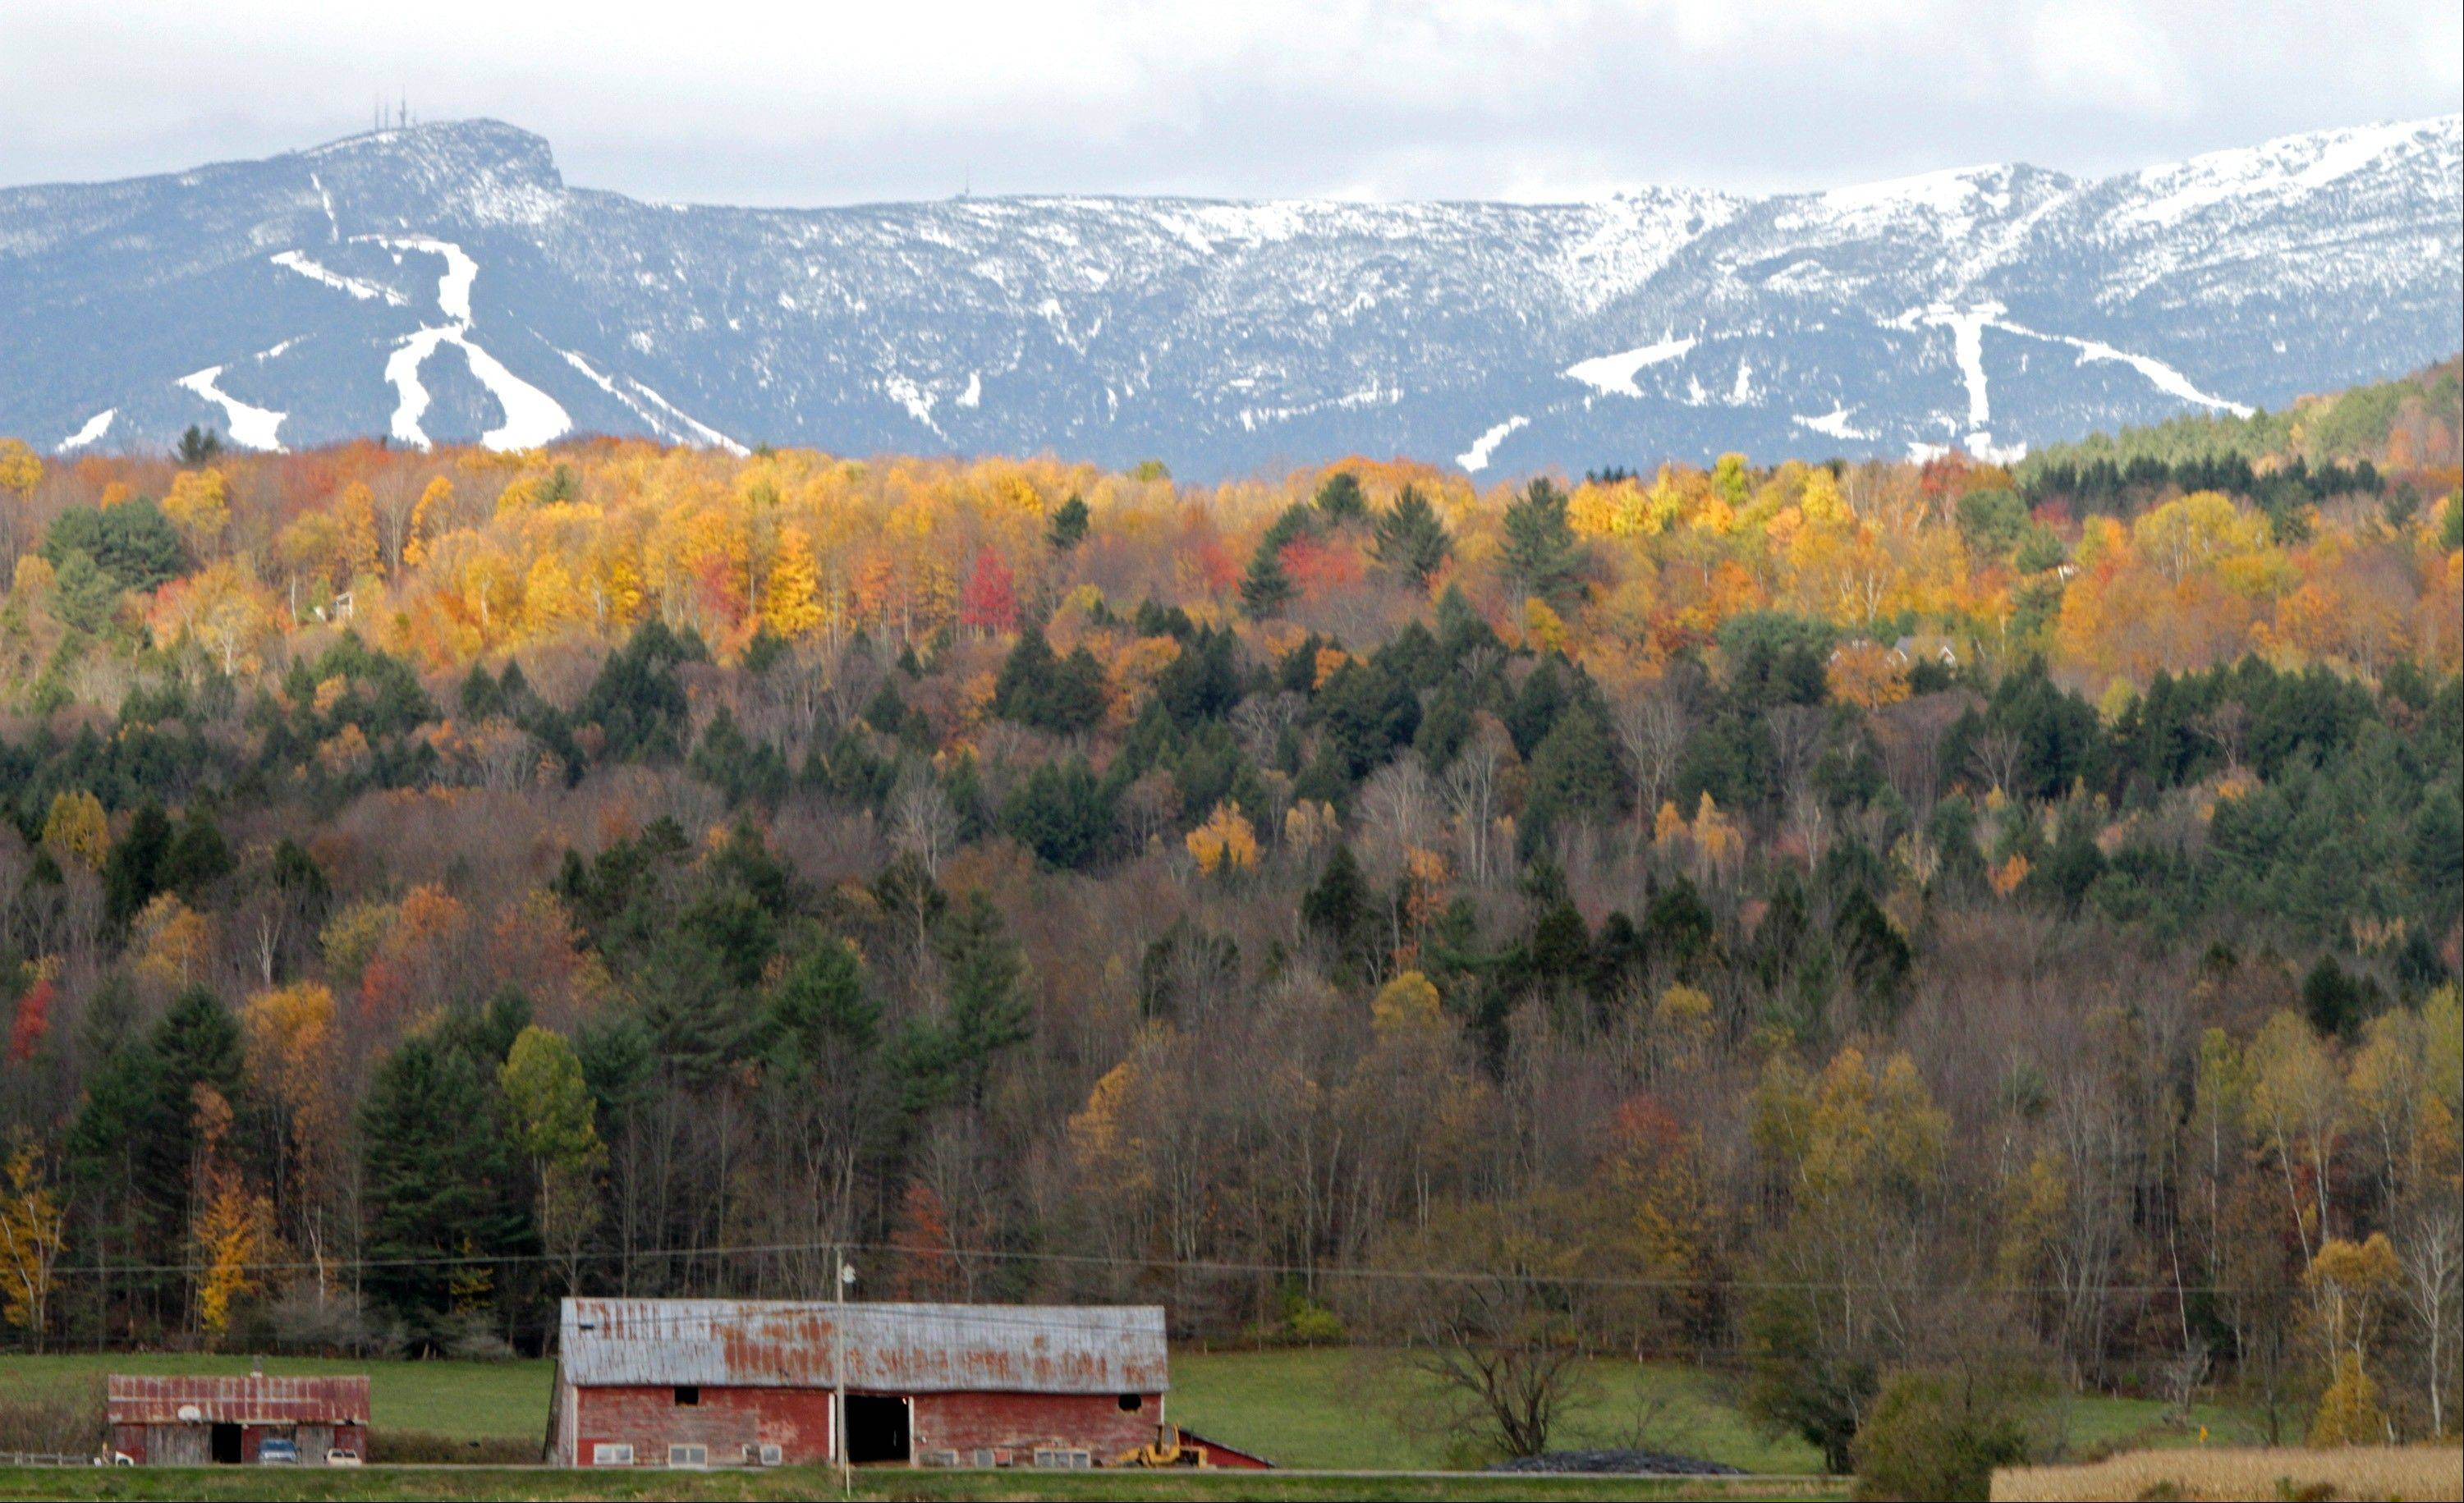 Sunlight falls on remaining bright foliage as the snow-capped ski trails of the Stowe ski resort are seen on the side of Mt. Mansfield.